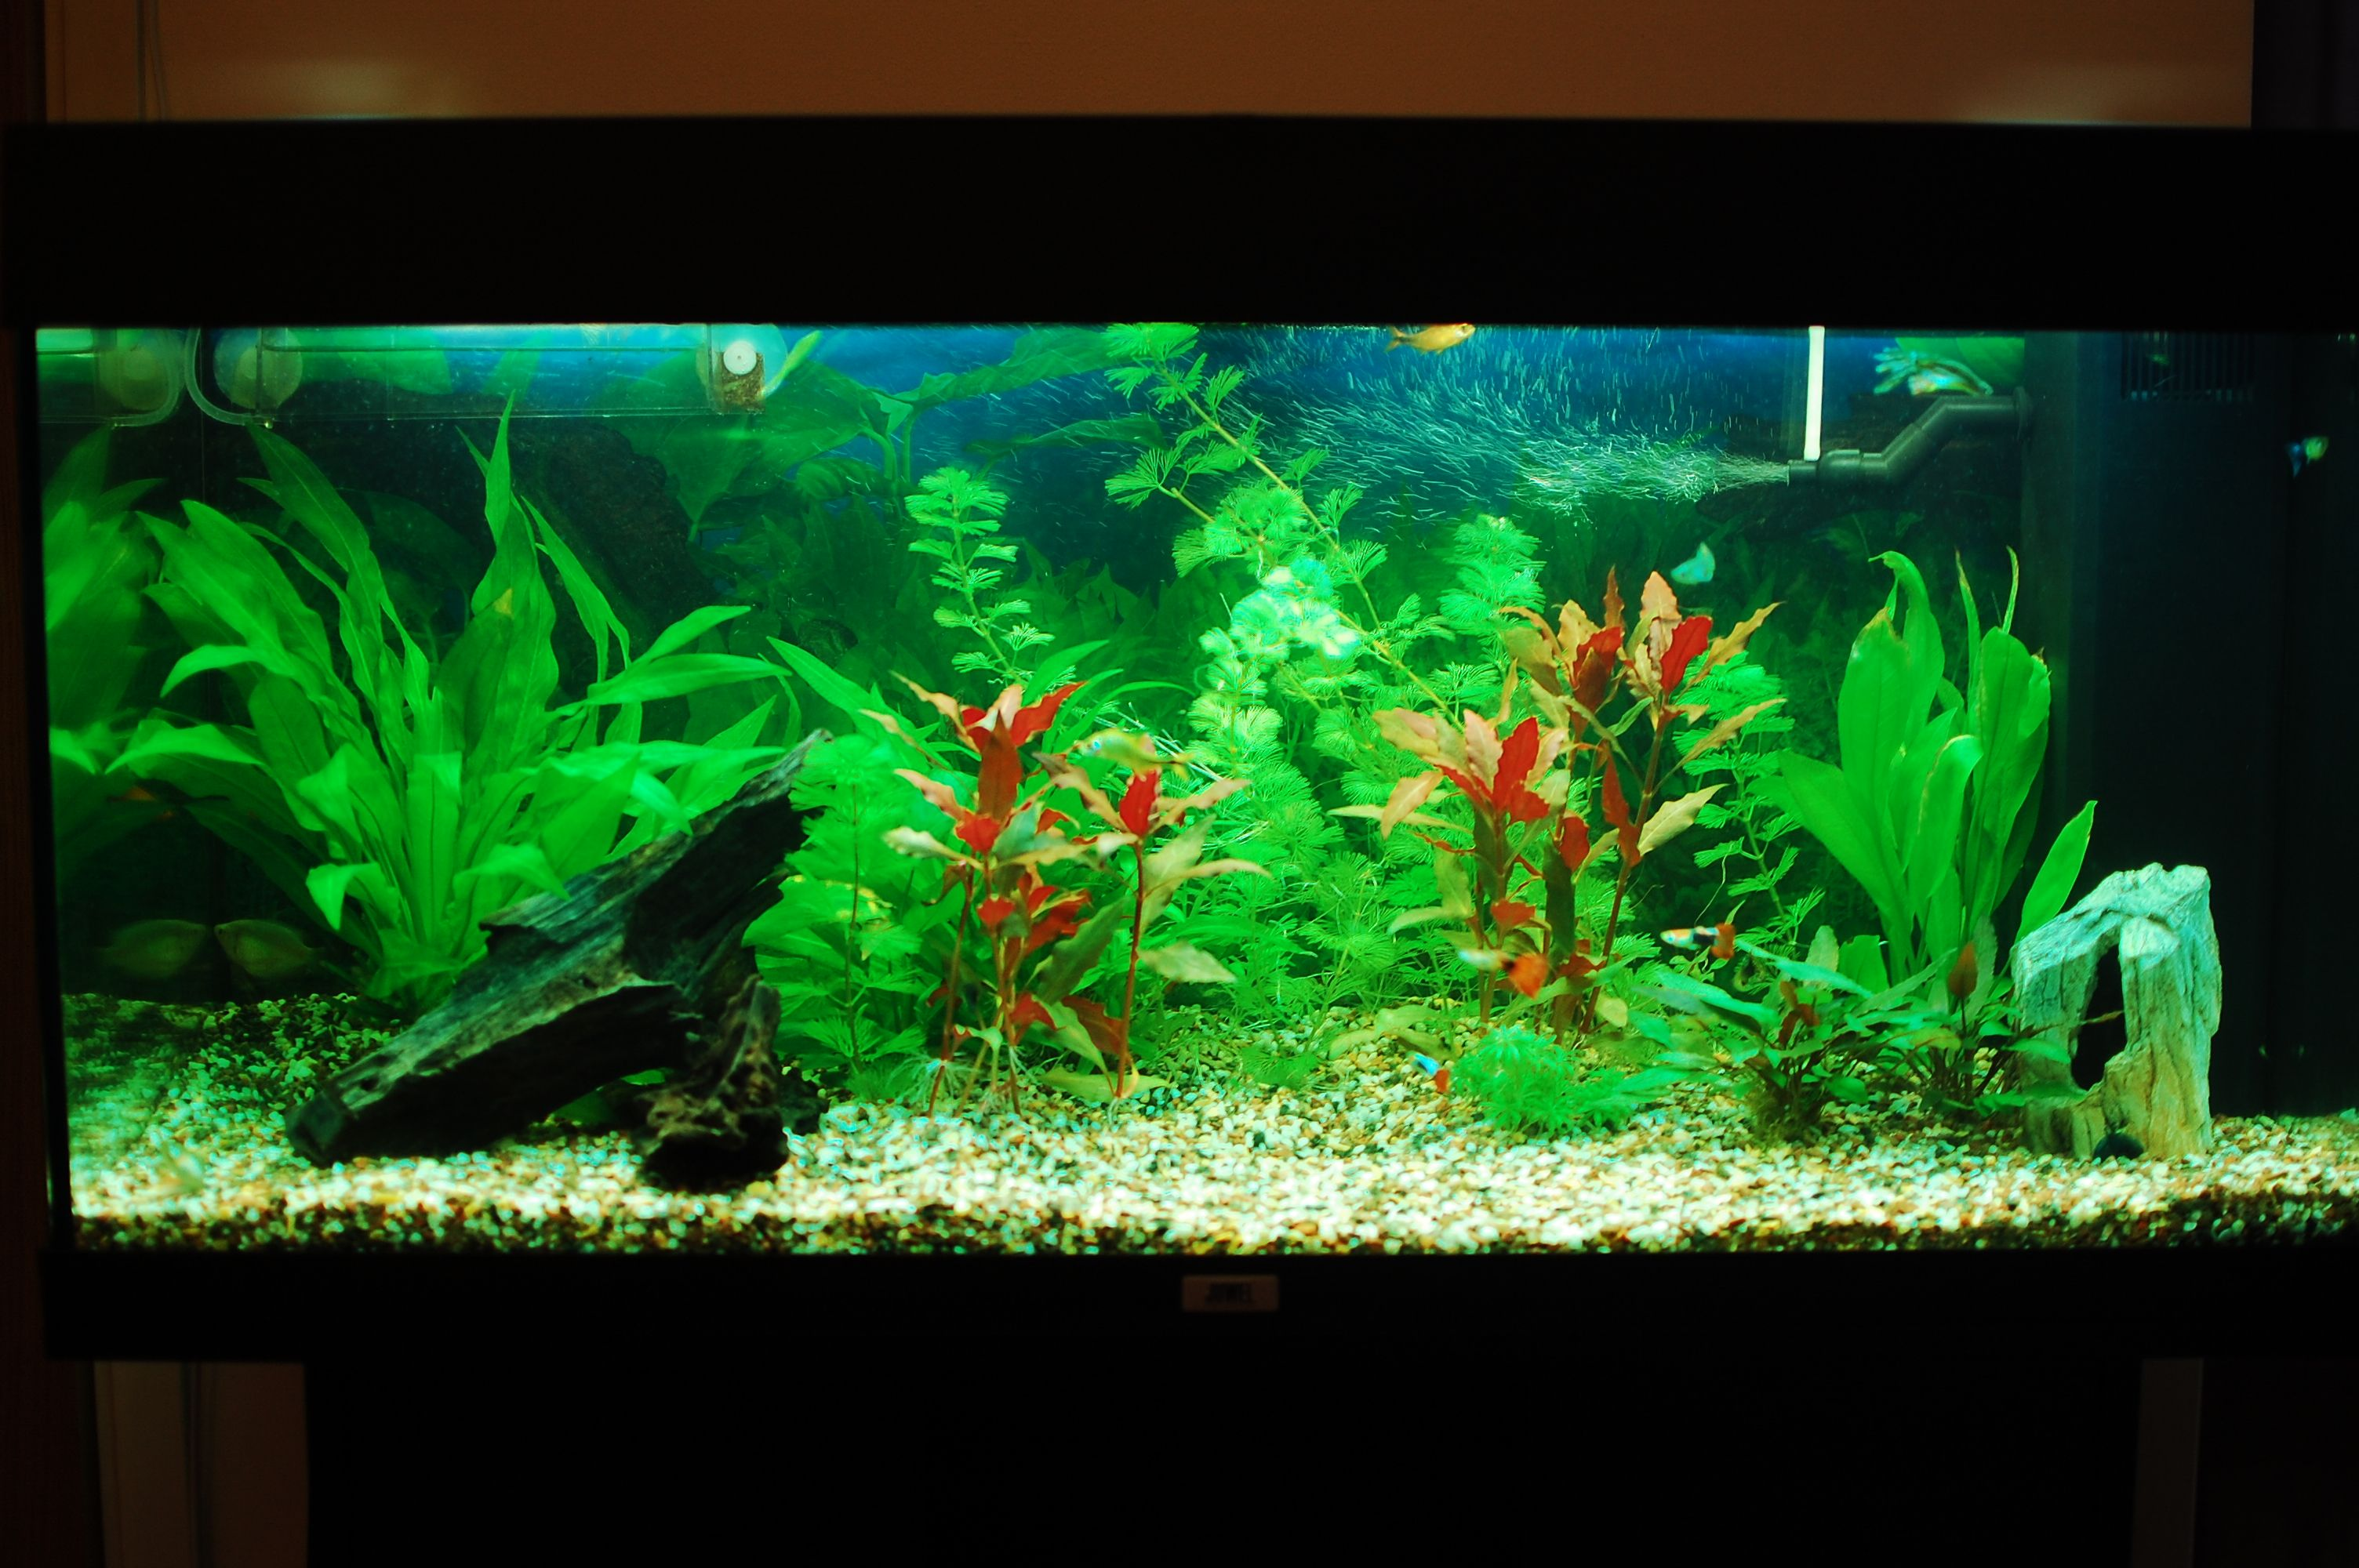 Fish aquarium is good in home - Beautiful Aquarium Wallpaper 44721 Open Walls